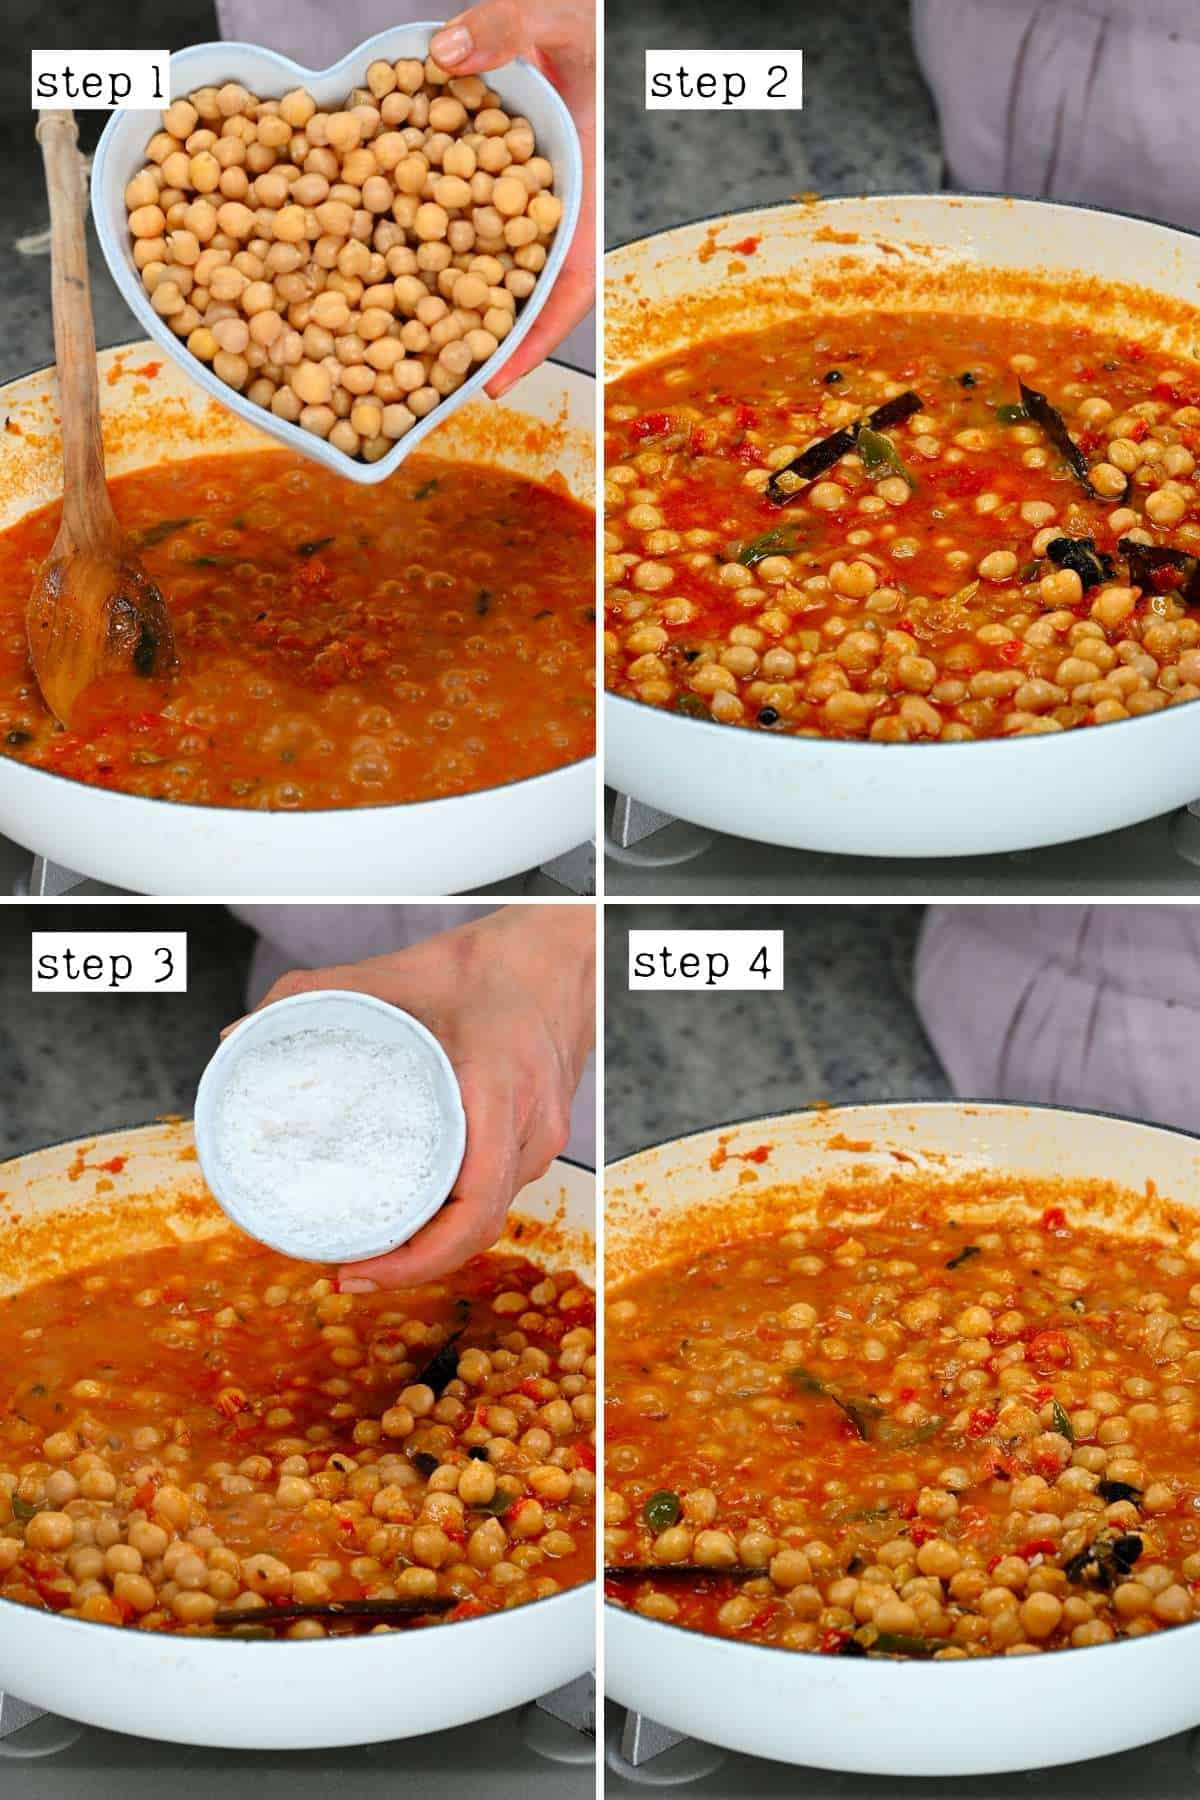 Steps for preparing chickpea curry